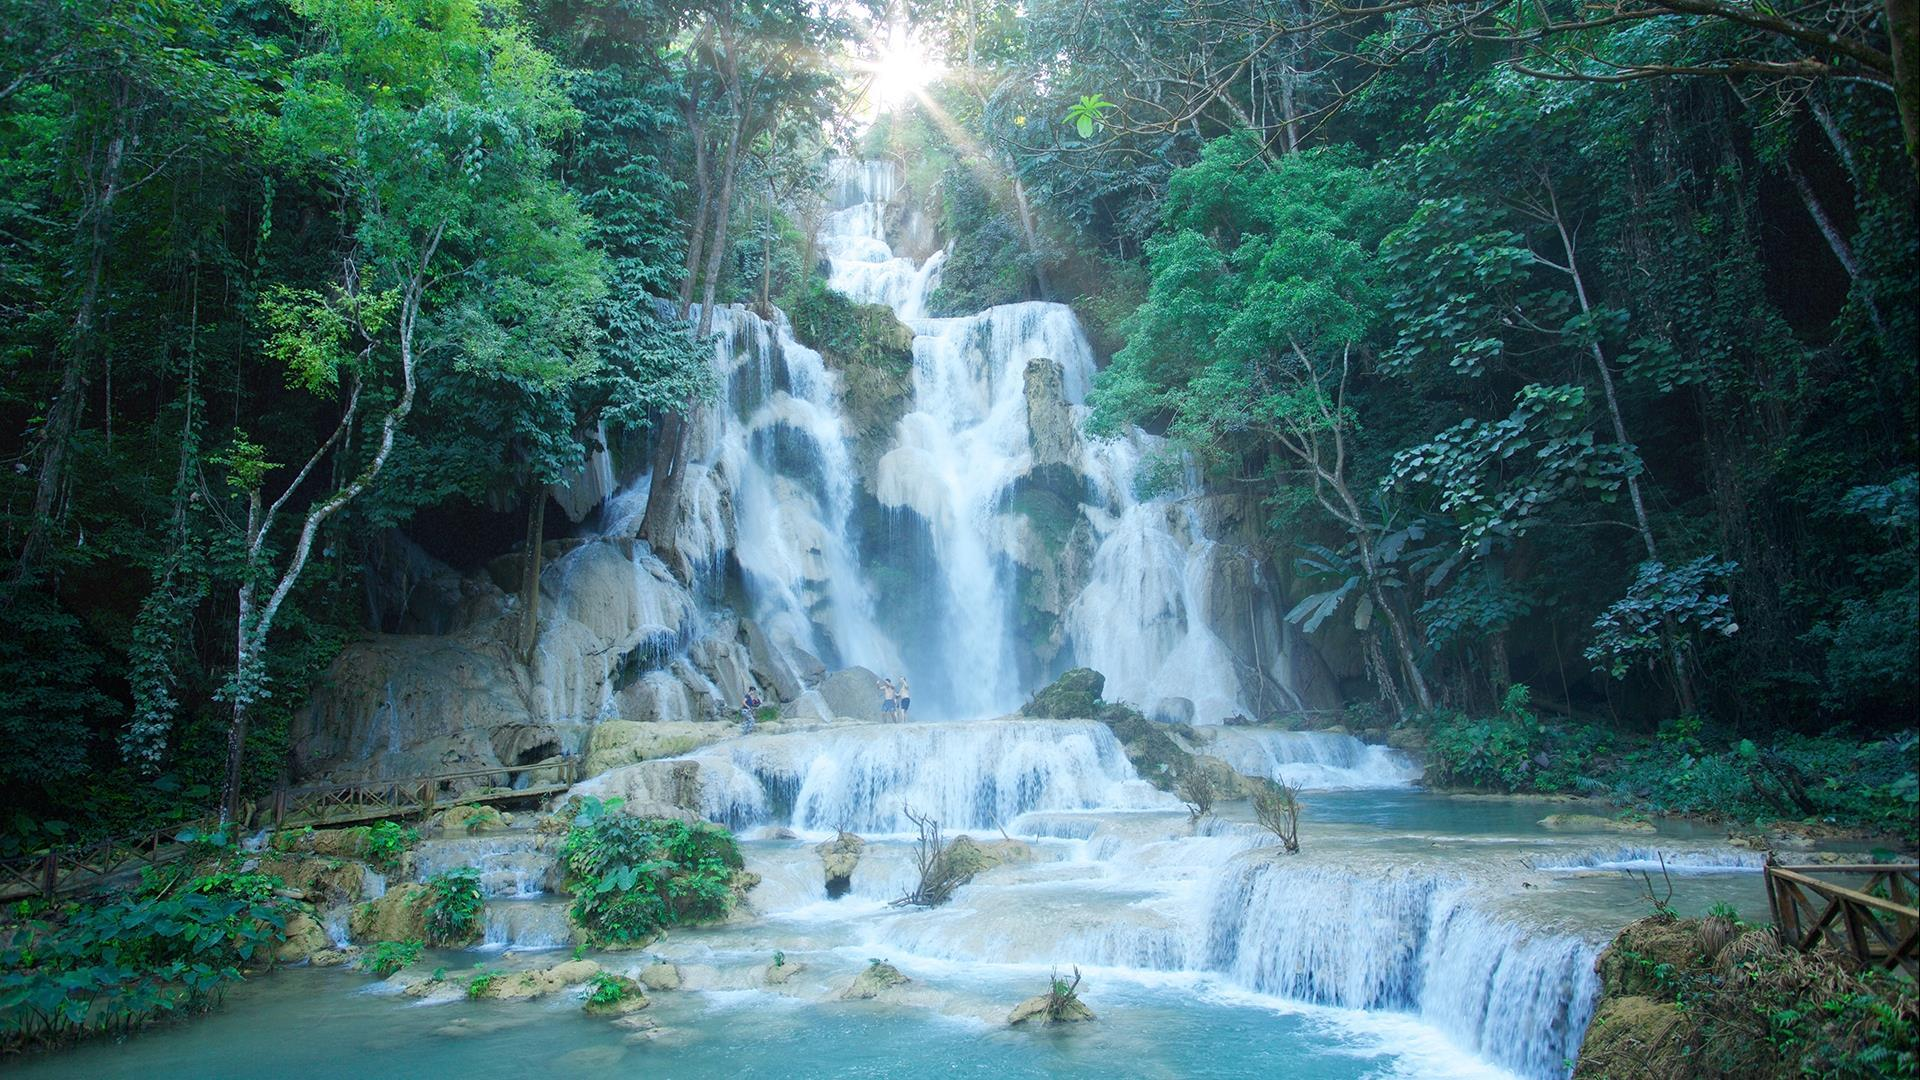 Laos, Luang Prabang : Luang Prabang City & Kuang Si Waterfall Day Tour - 1 Day | See the Best of the City and Cool Off at the Falls!